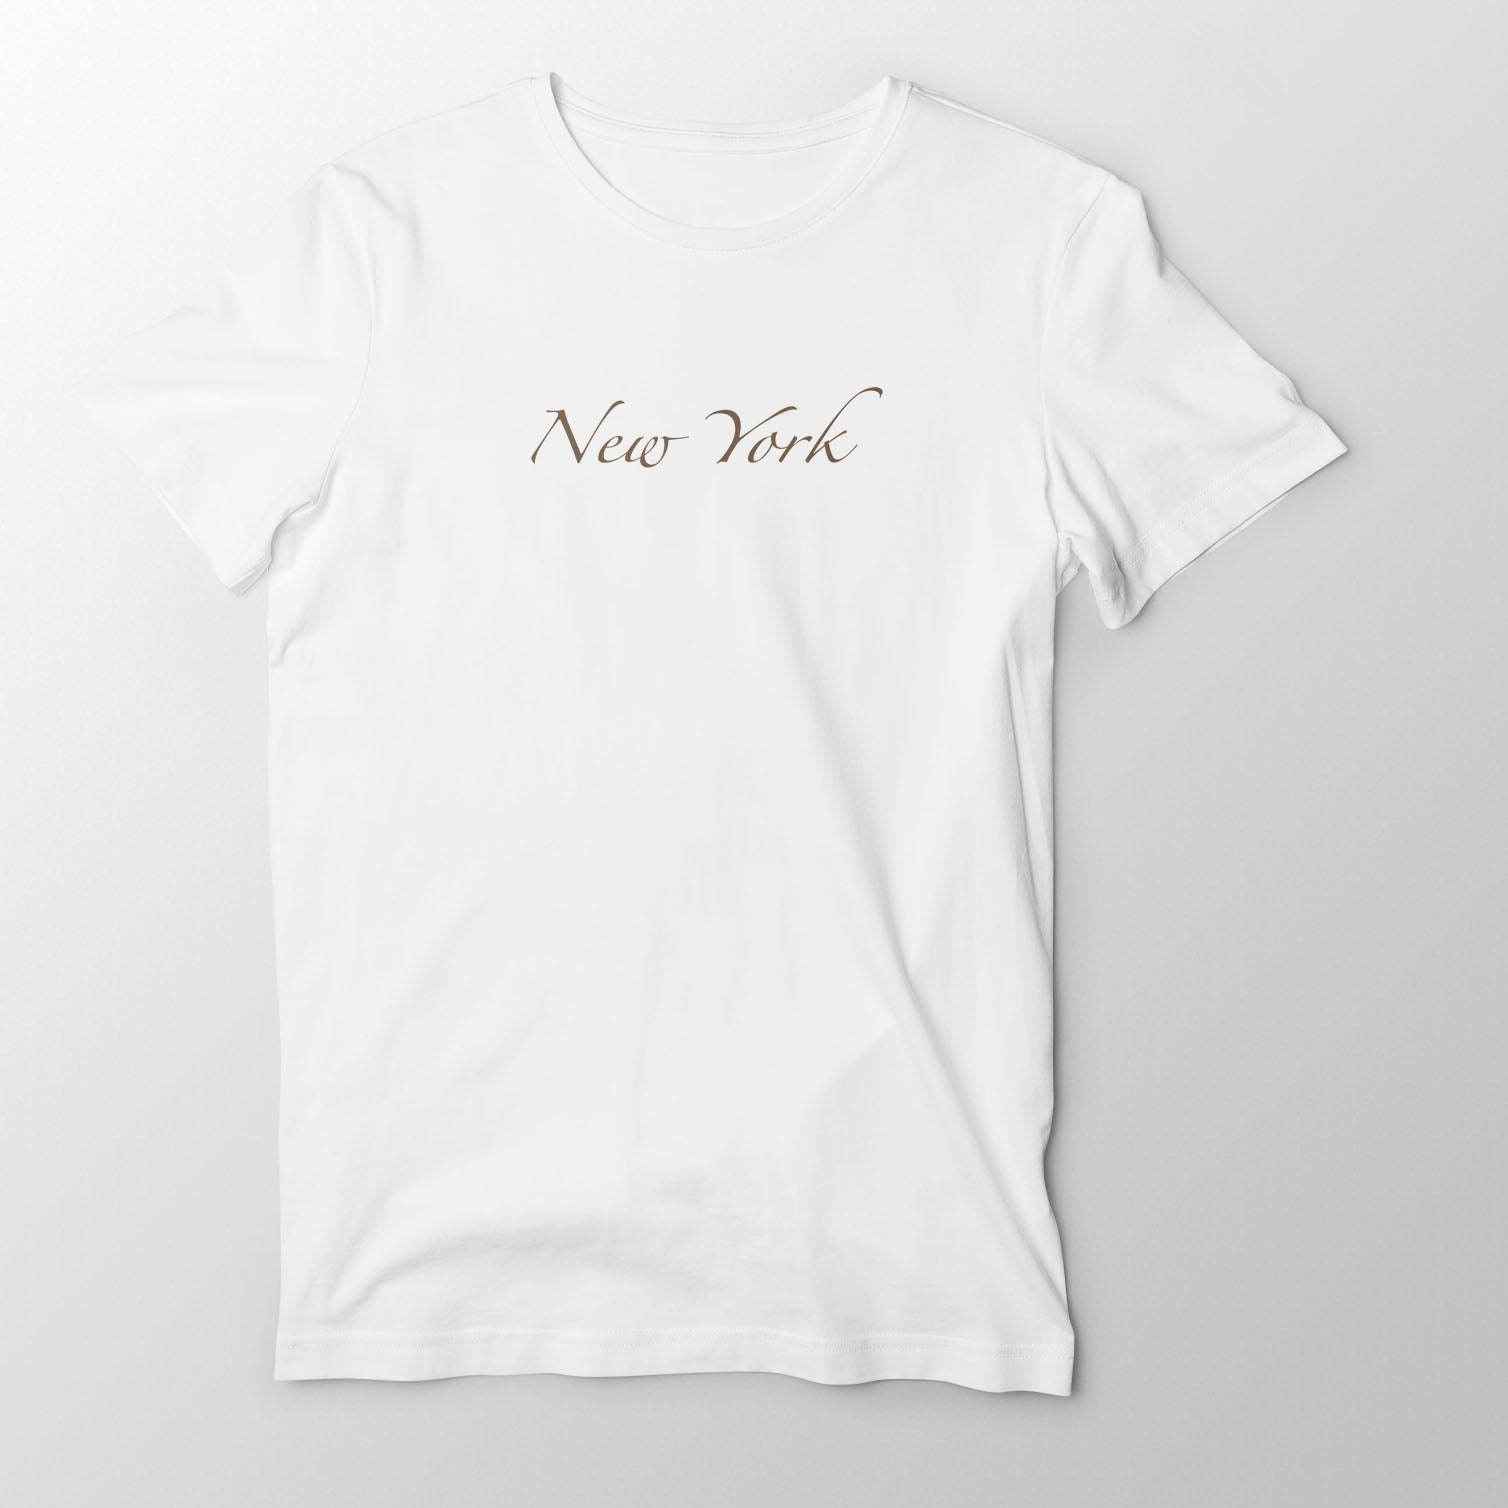 New York-T-Shirts-Plain Graphic Shirts